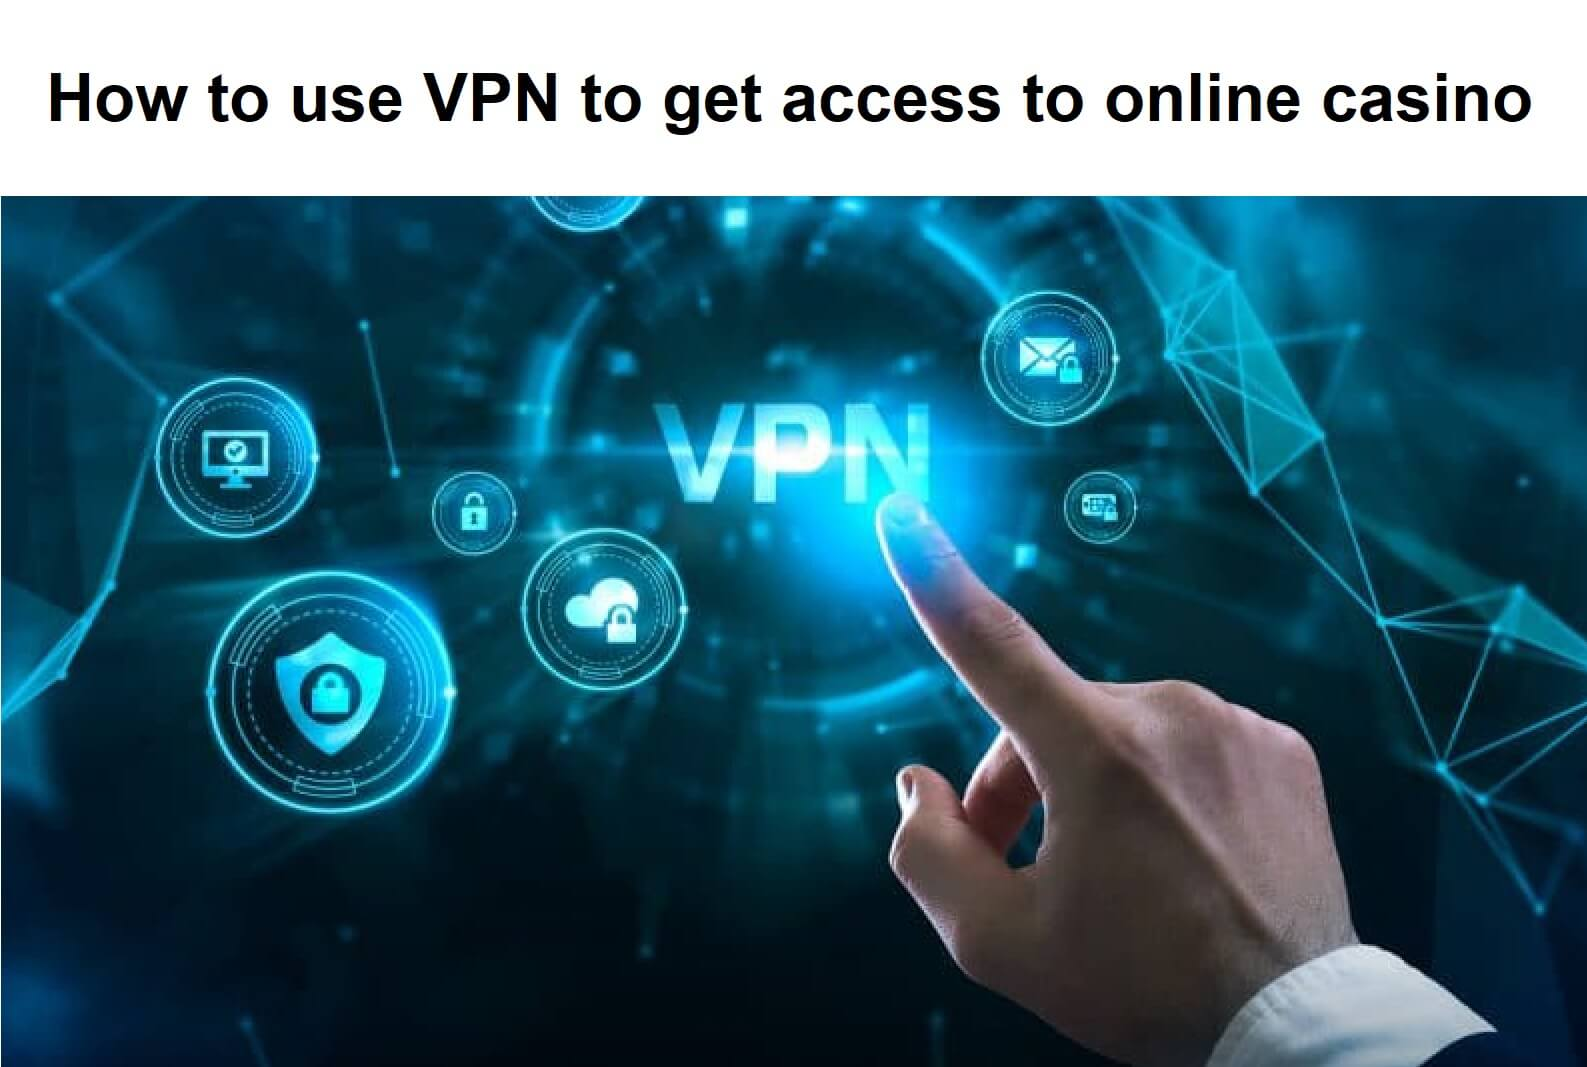 How to use VPN connection online